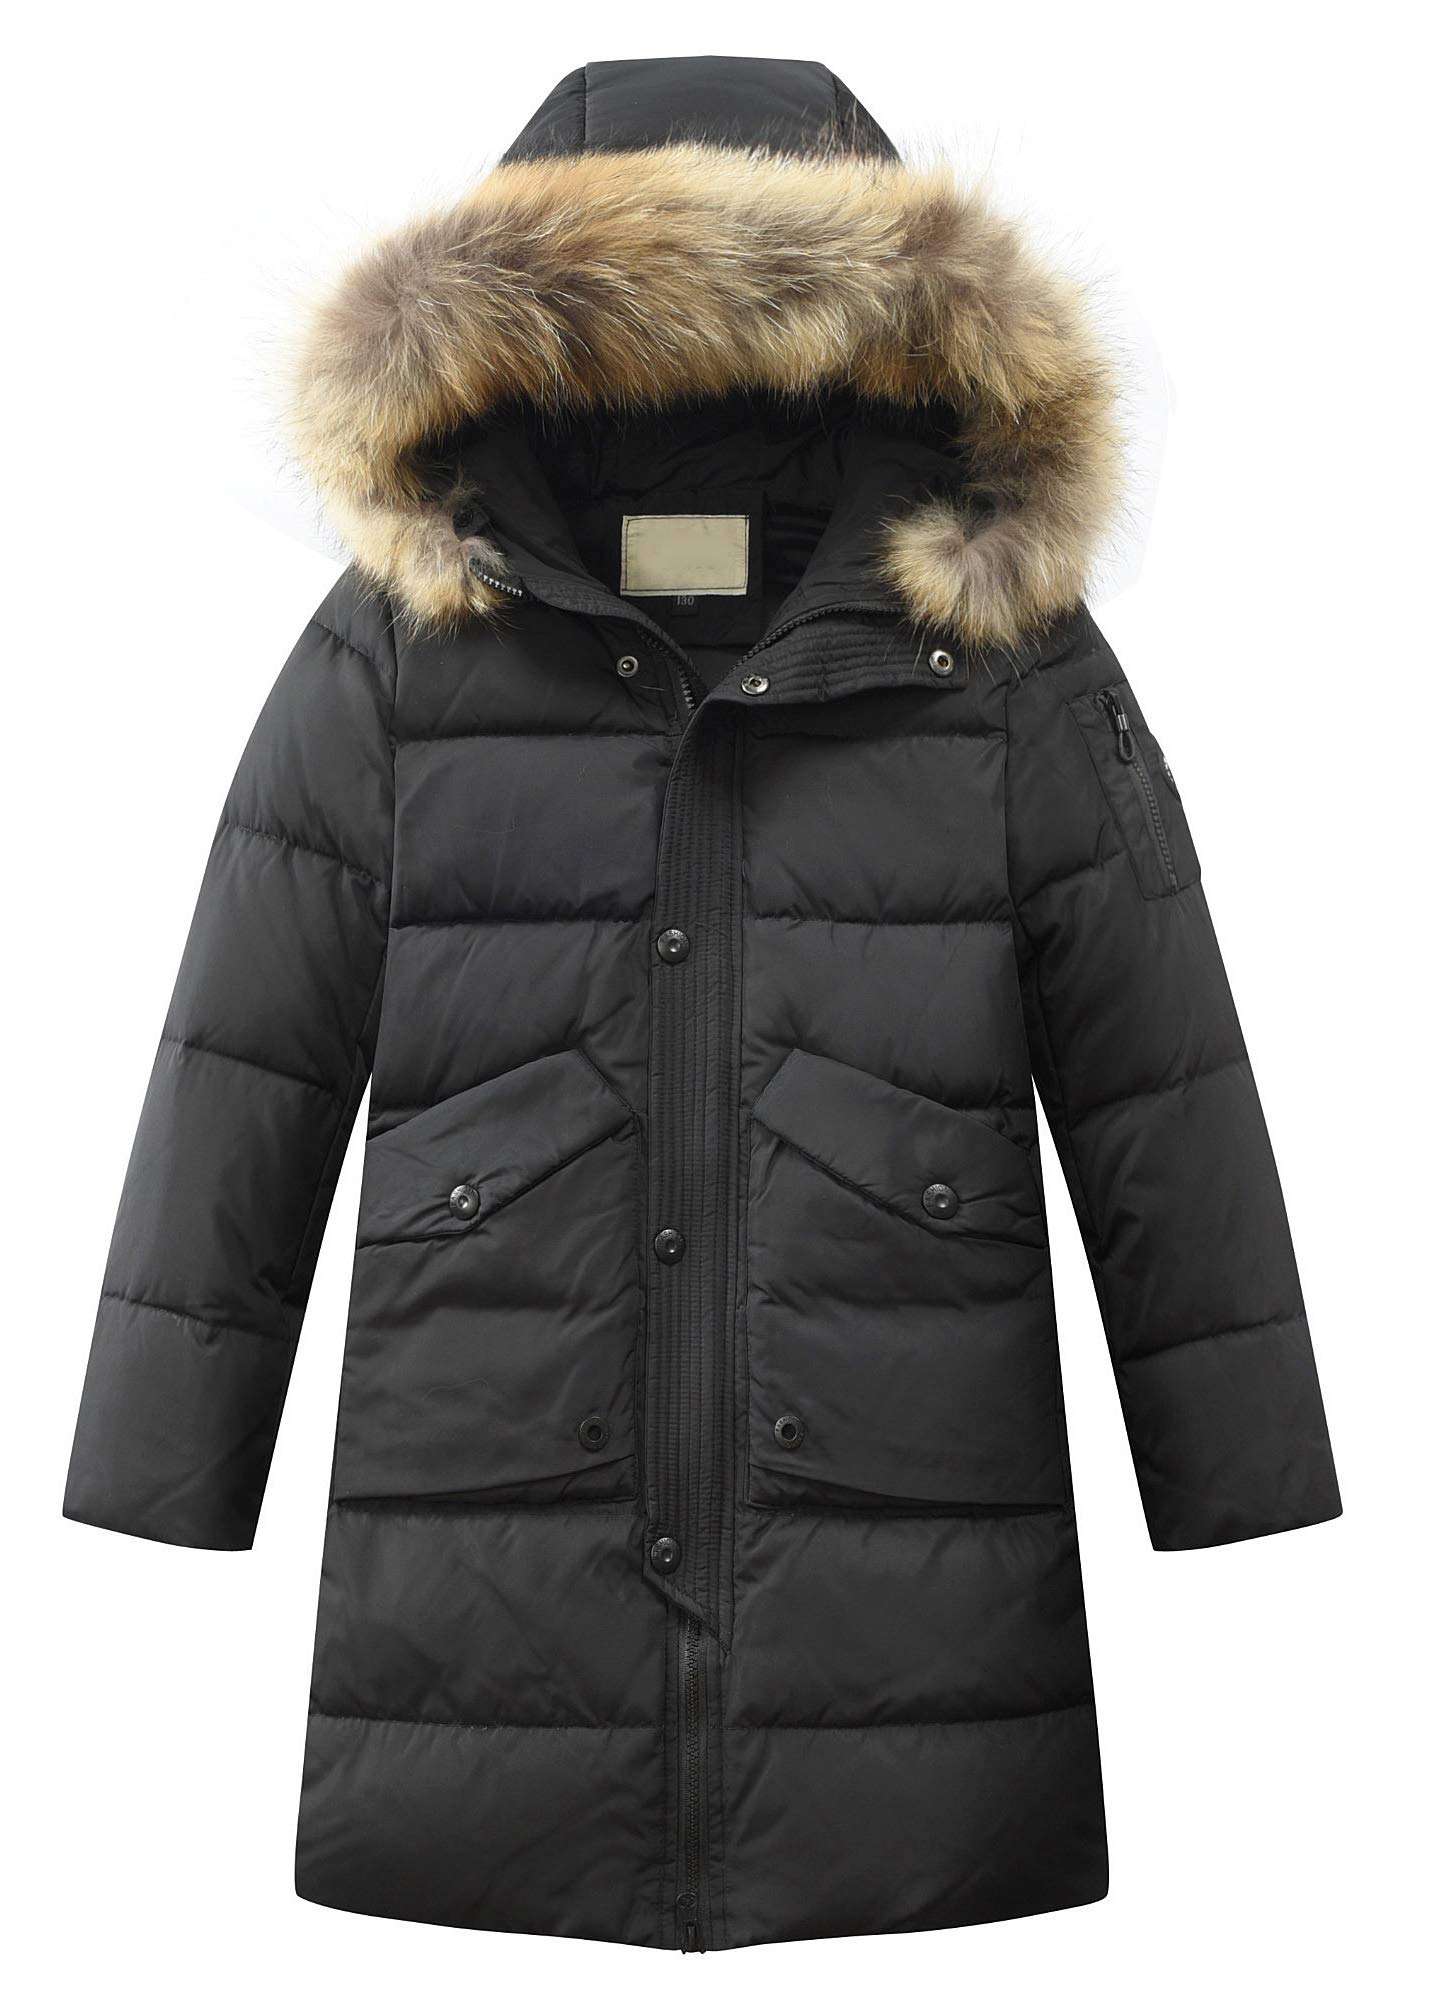 Mallimoda Big Boy's Hooded Bubble Jacket Puffer Down Outwear Coat Style 2 Black 13-14 Years